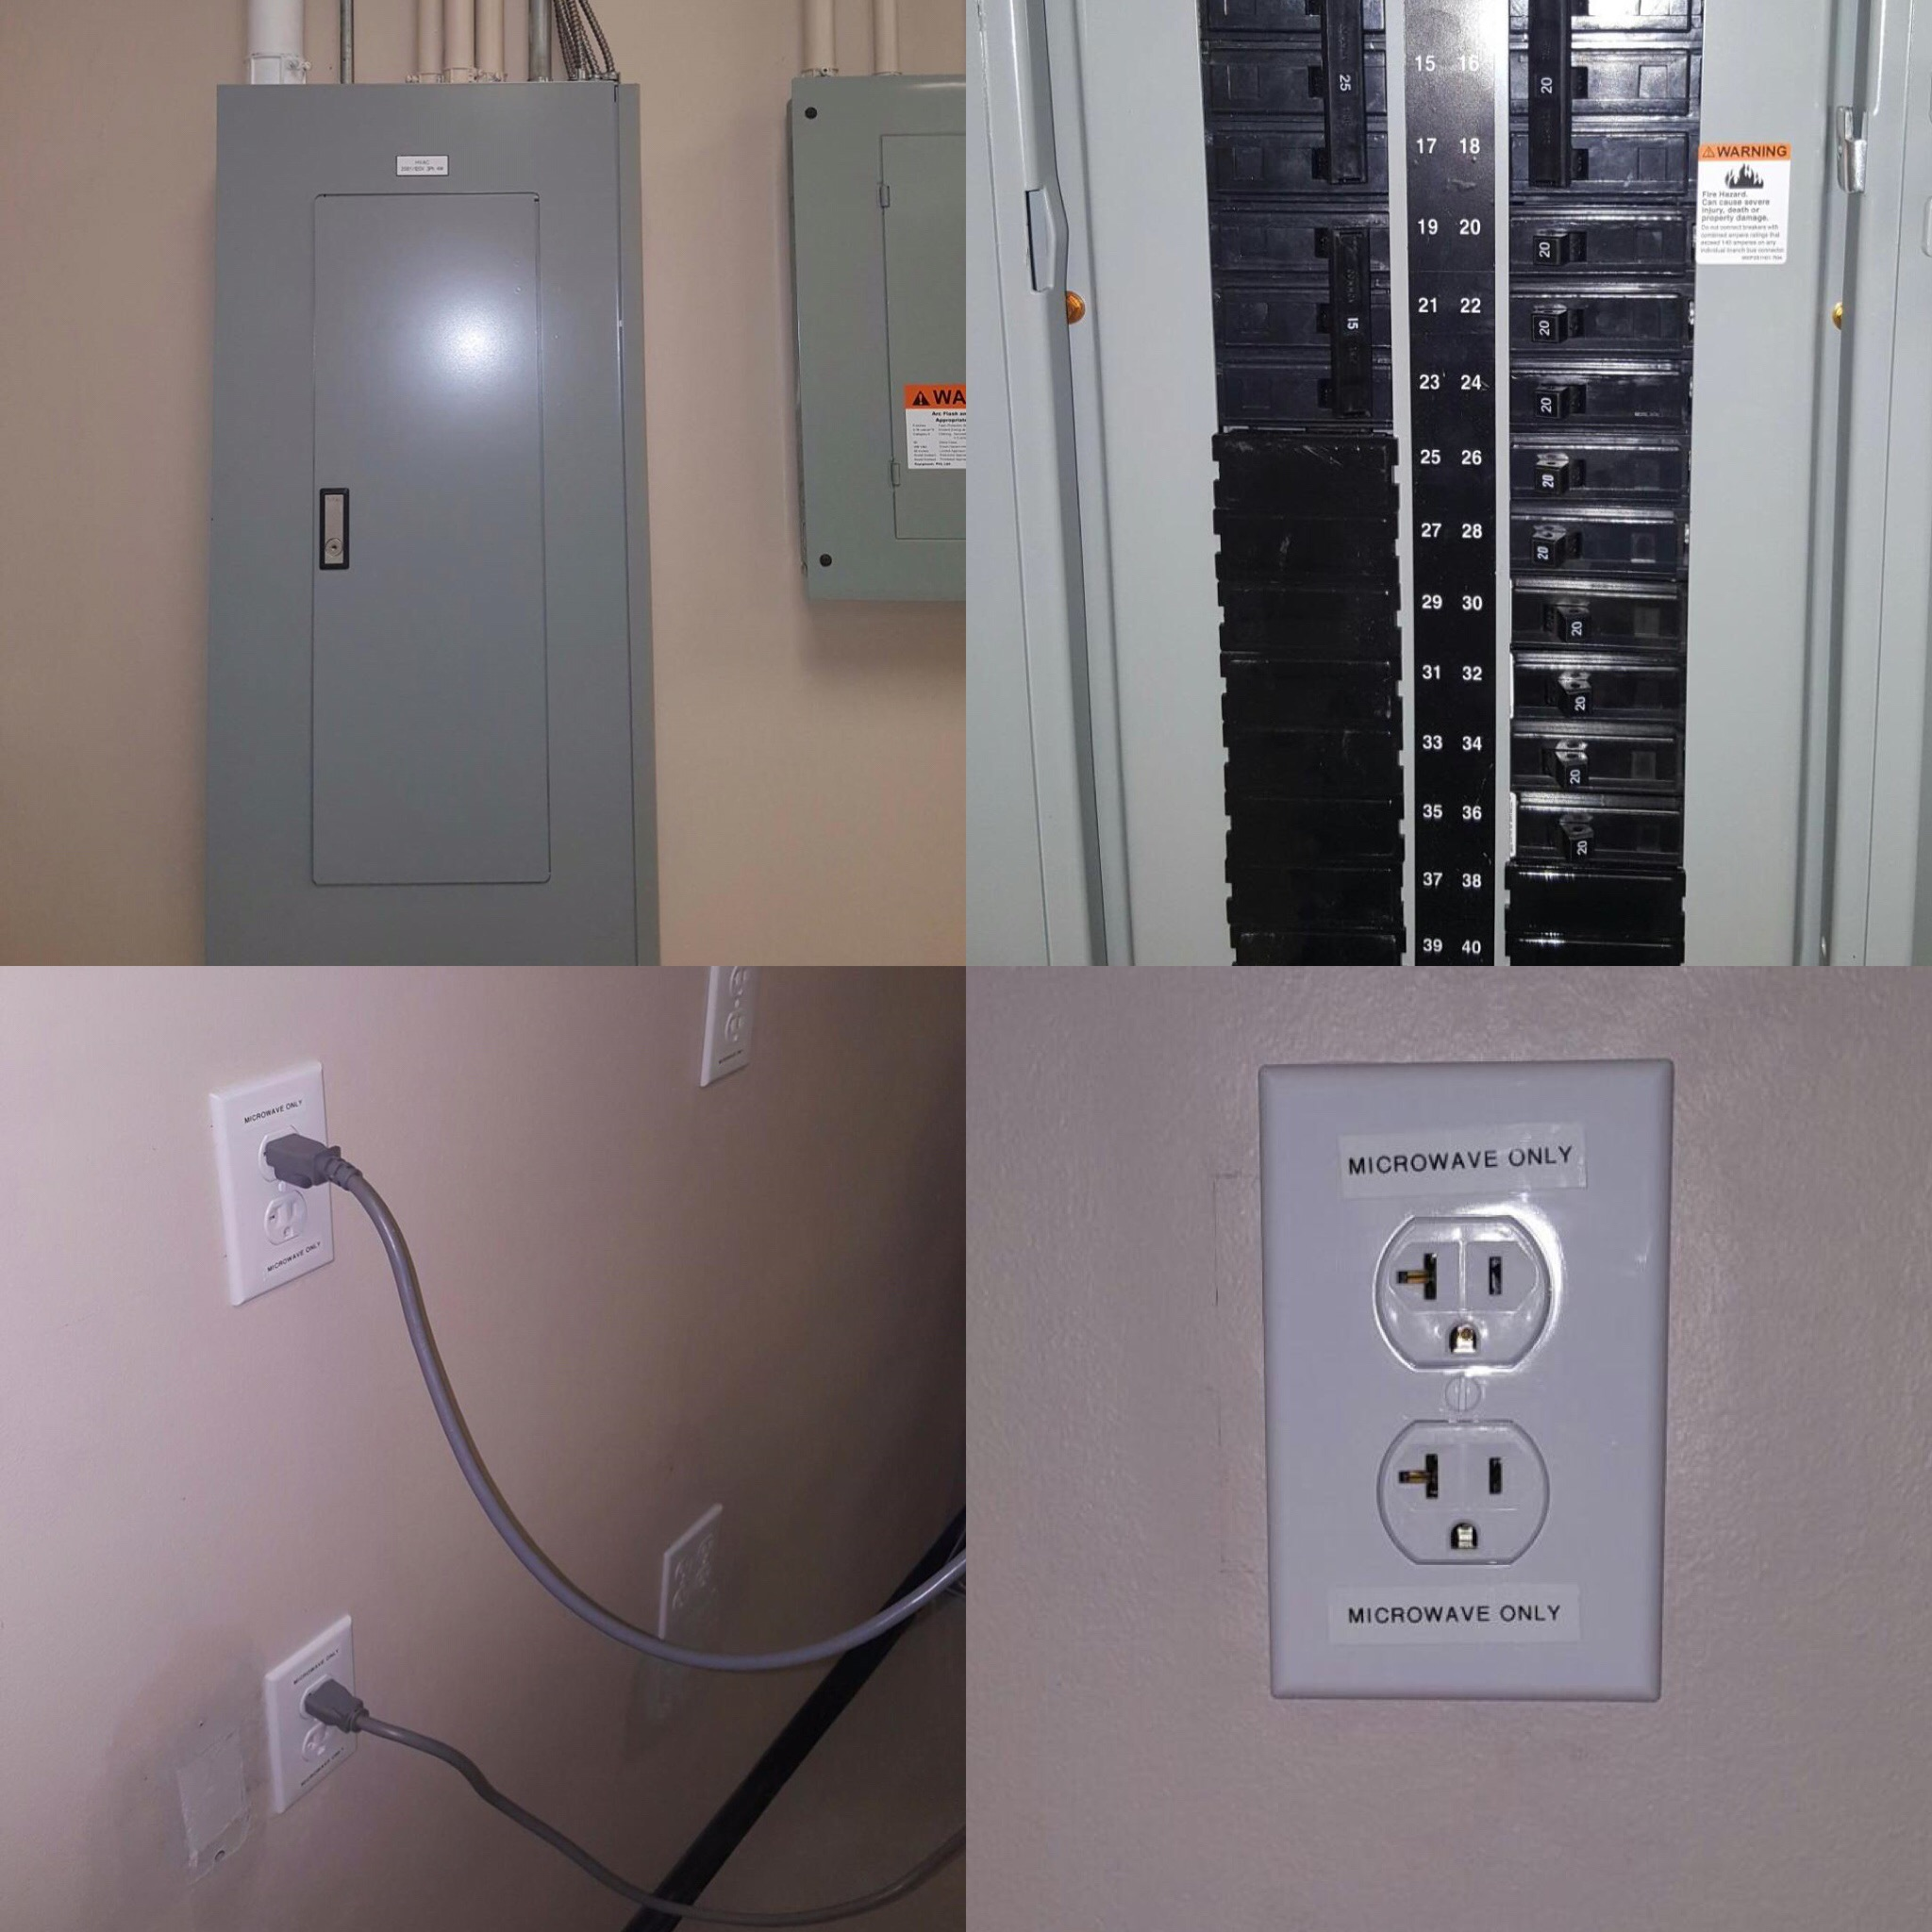 Dedicated Circuits and Outlets for Appliances